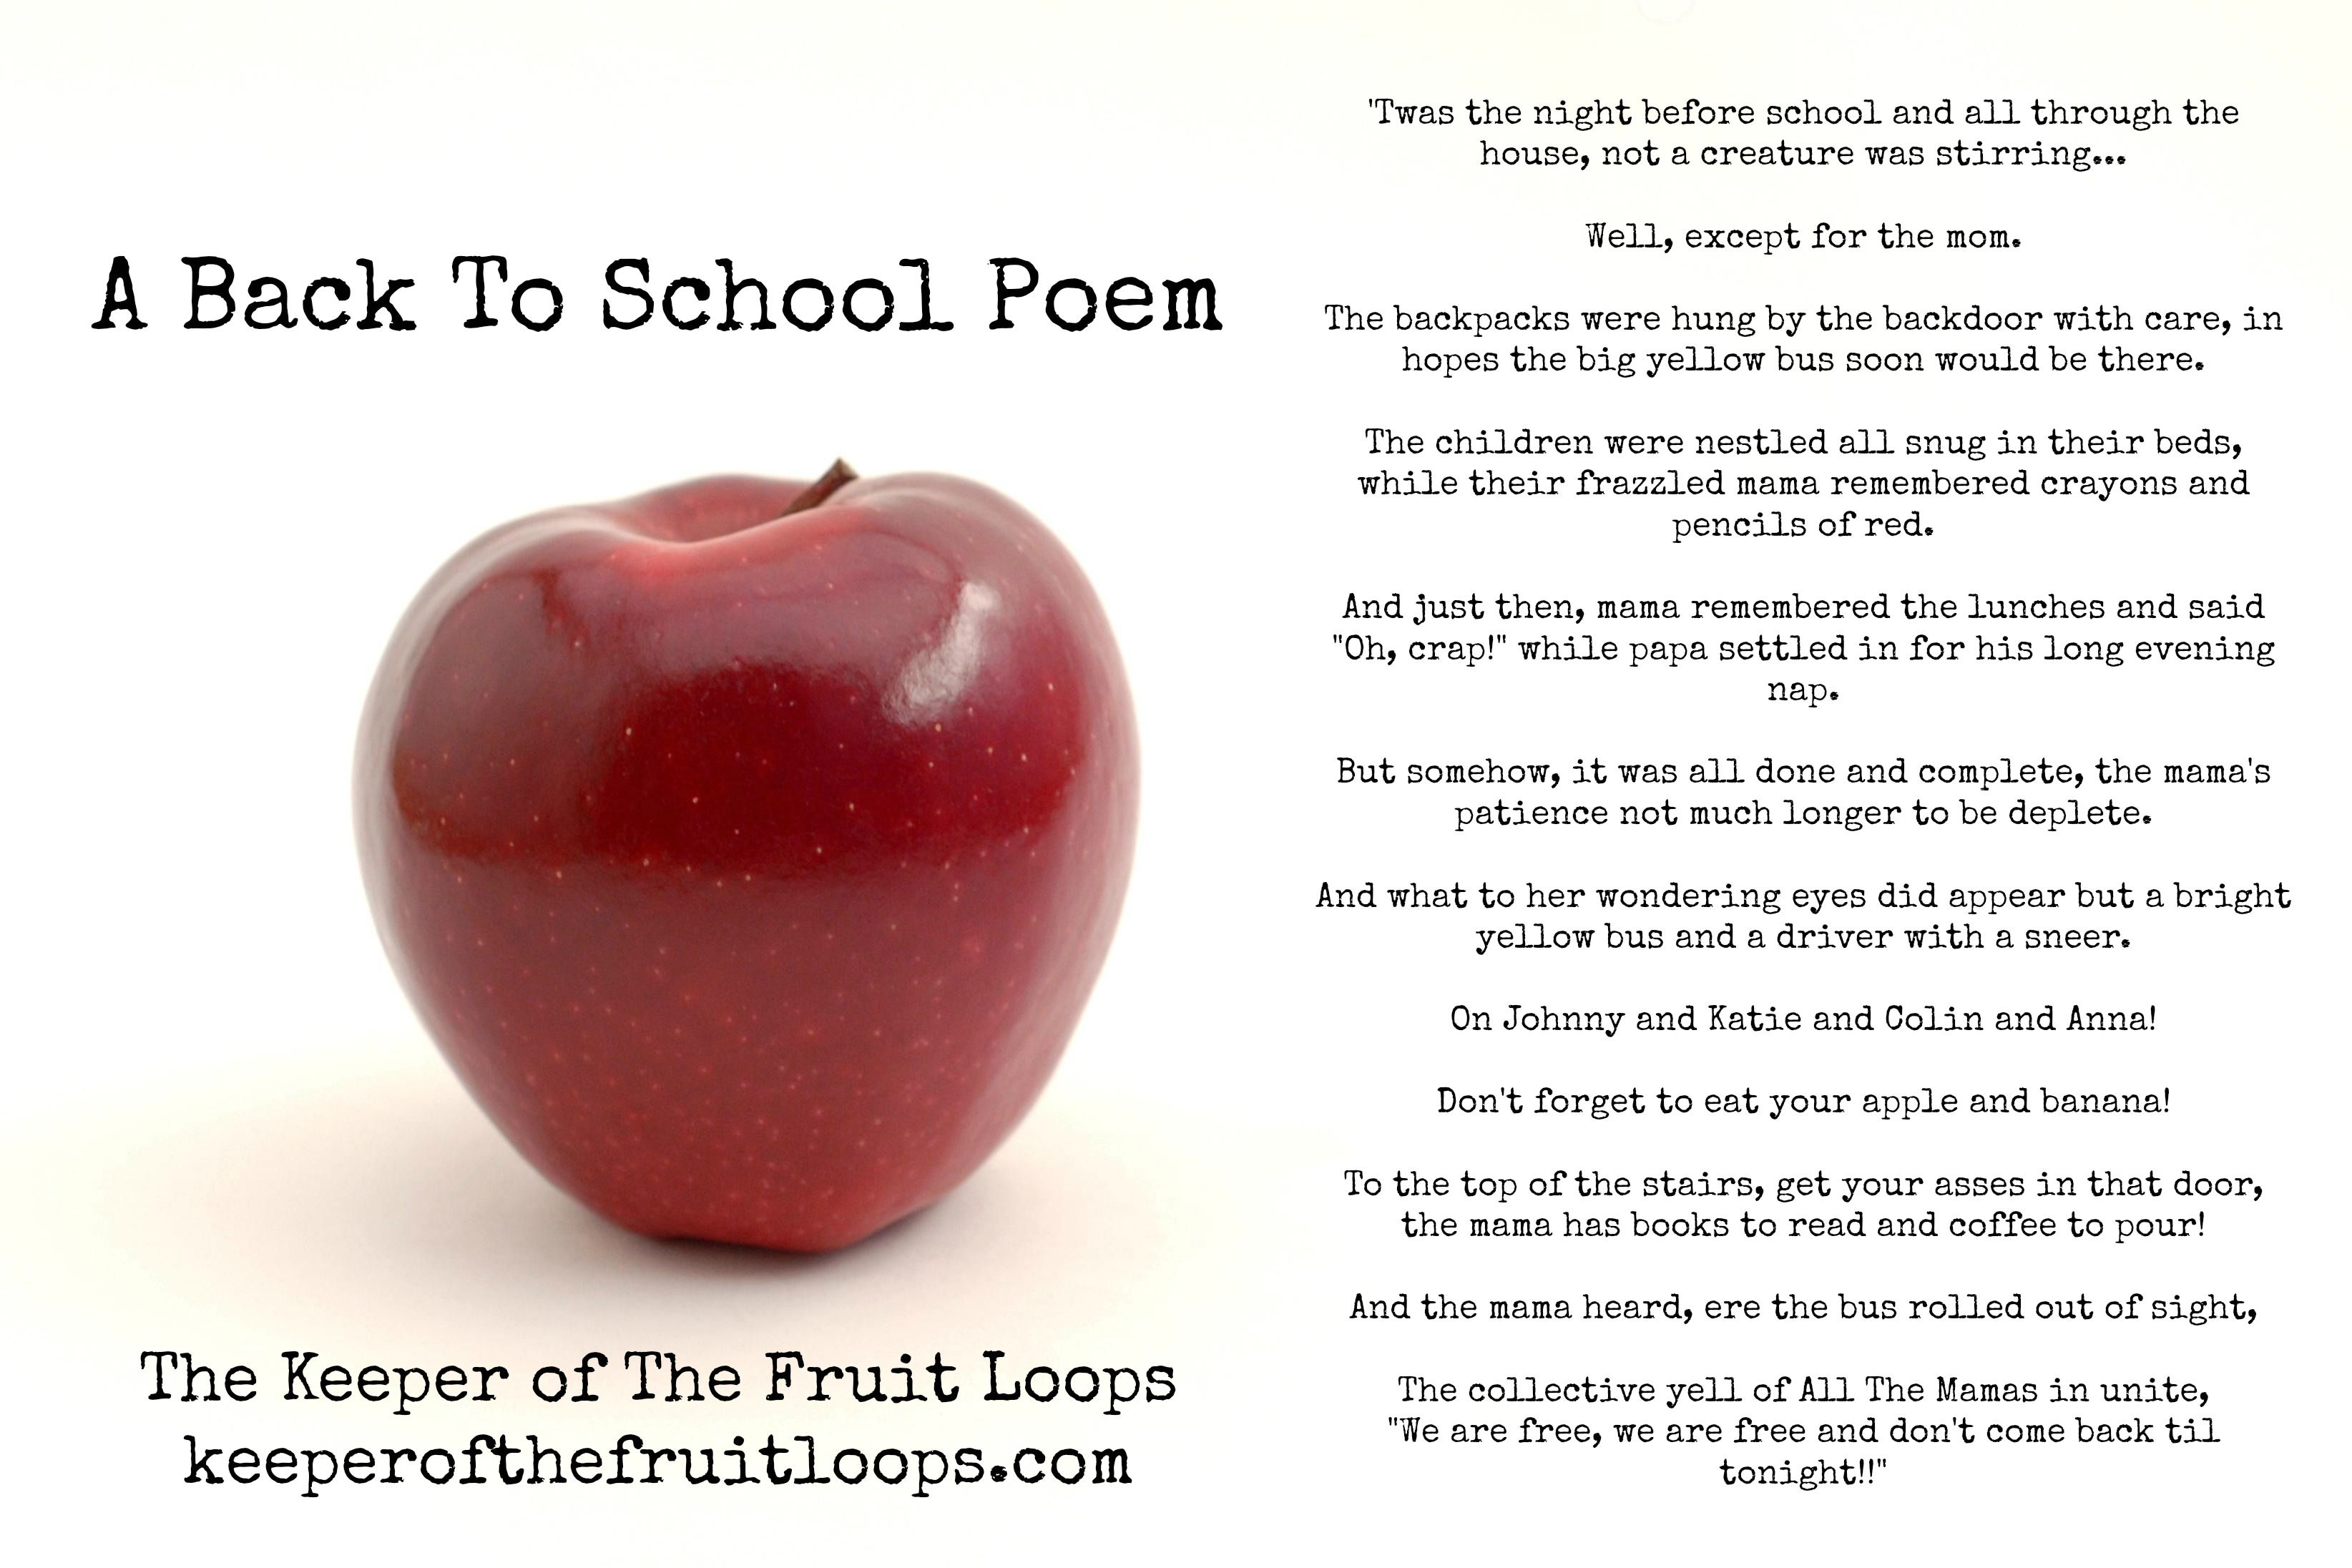 A Back To School Poem Set To Night Before Christmas Back To School Poem Poems About School Night Before School